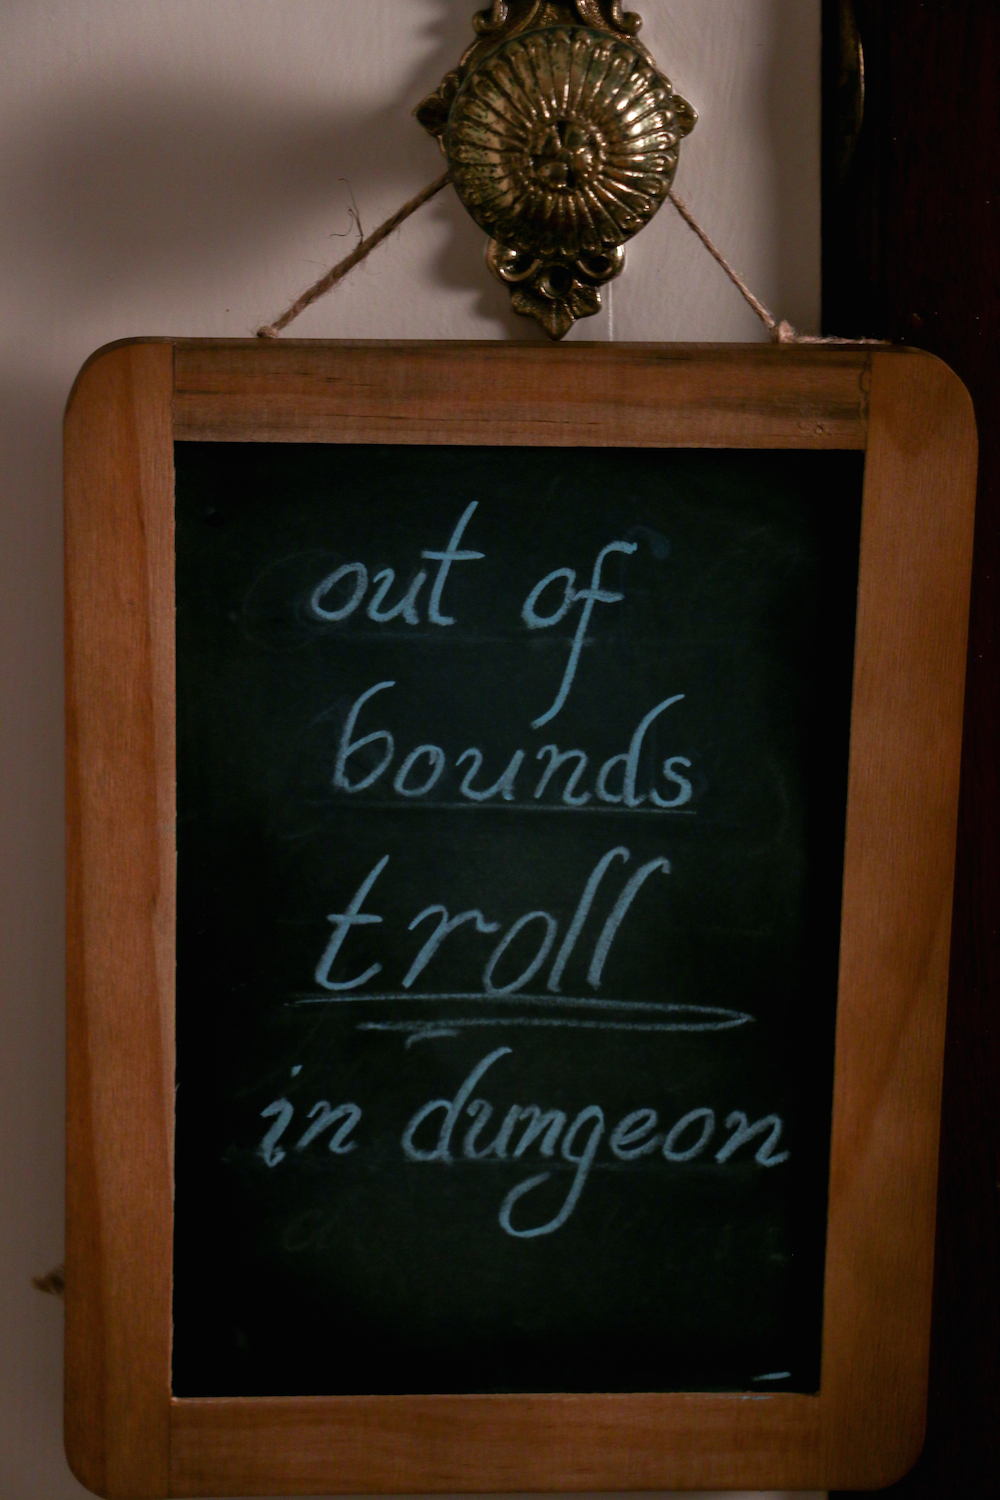 harry potter hogwarts dinner party- troll in dungeon sign